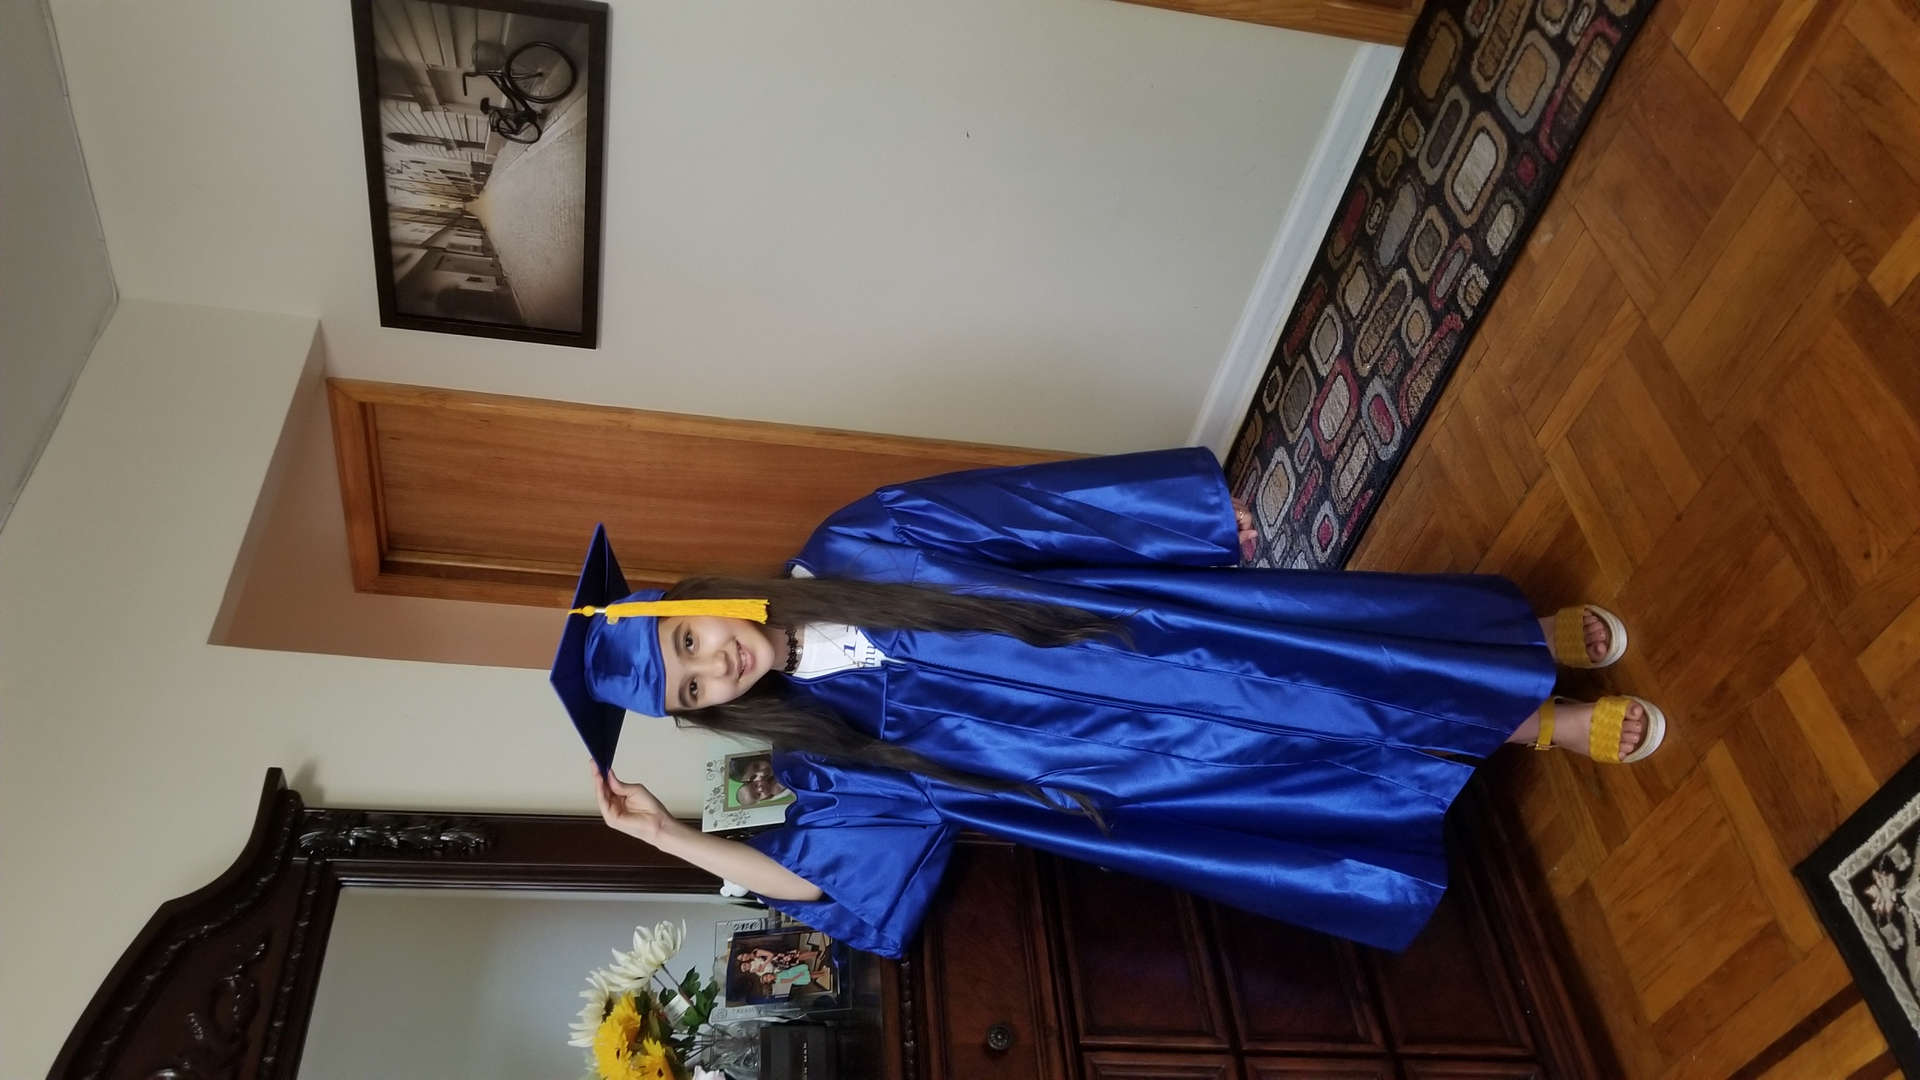 Fifth grade graduate at home with cap and gown